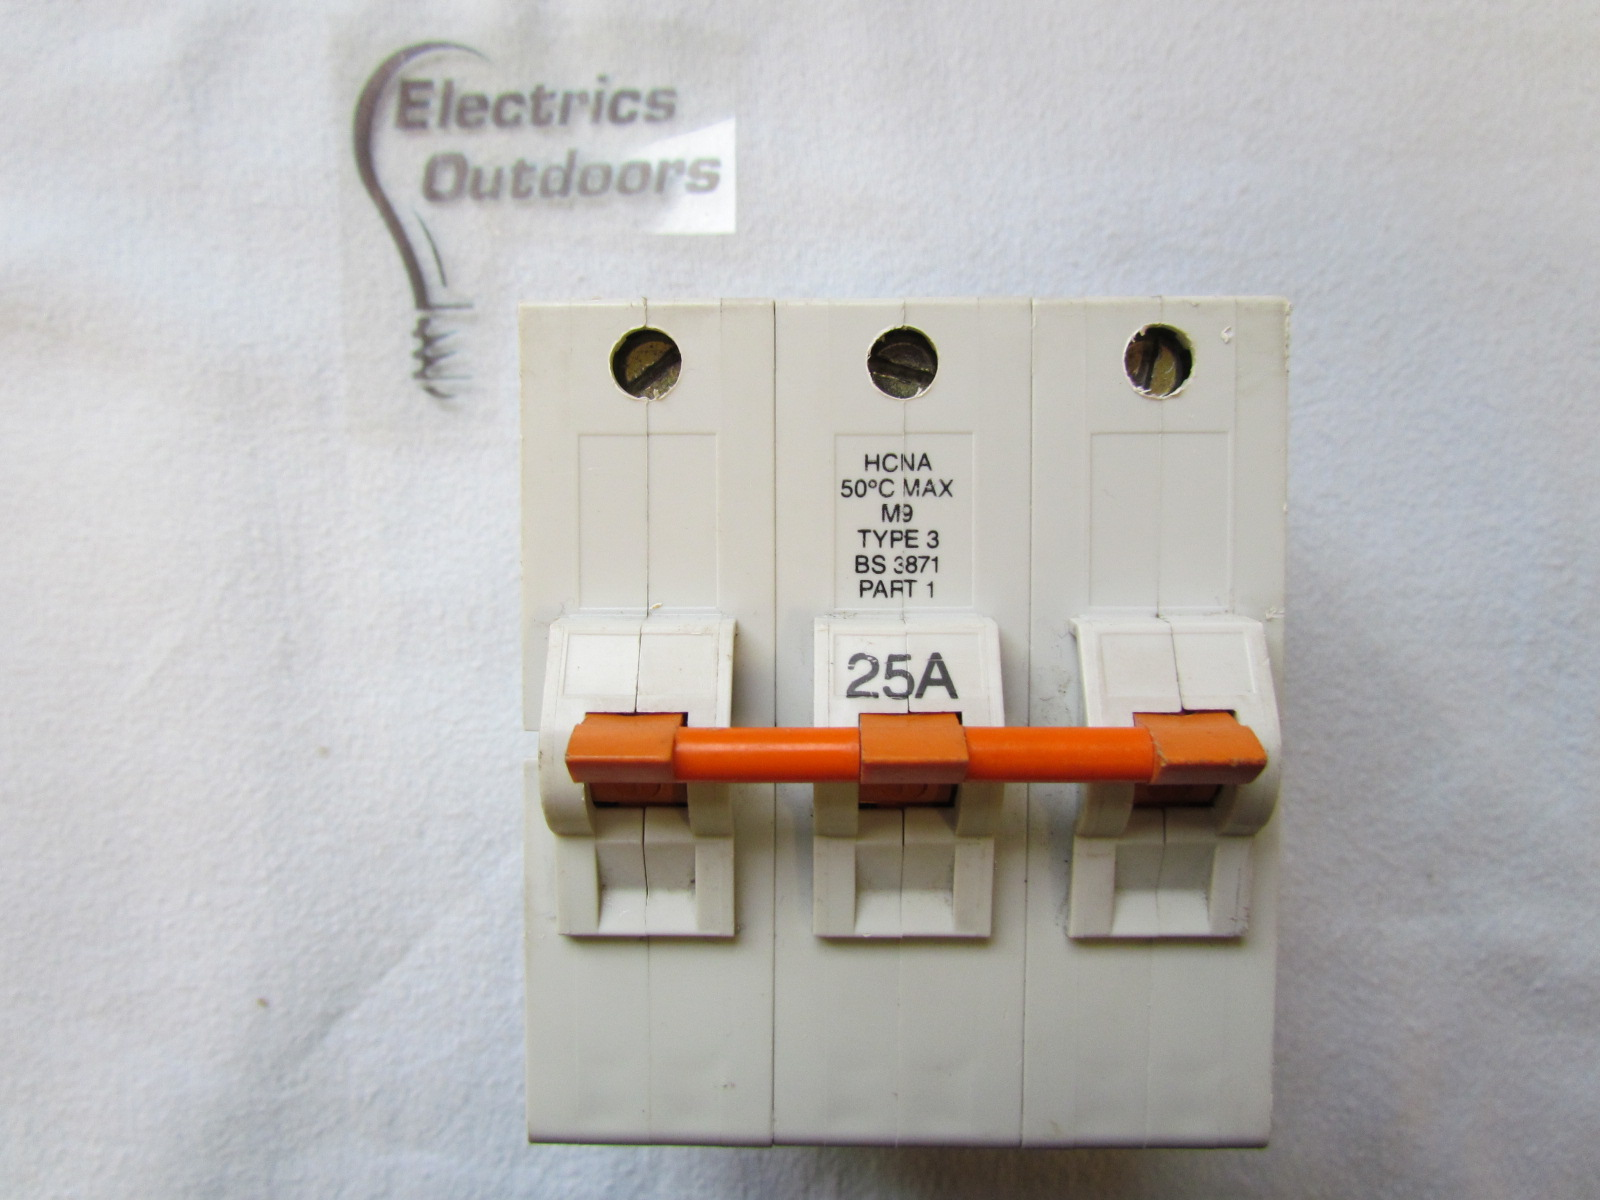 FEDERAL ELECTRIC STABLOK 25 AMP TYPE 3 HCNA THREE POLE 415V MCB